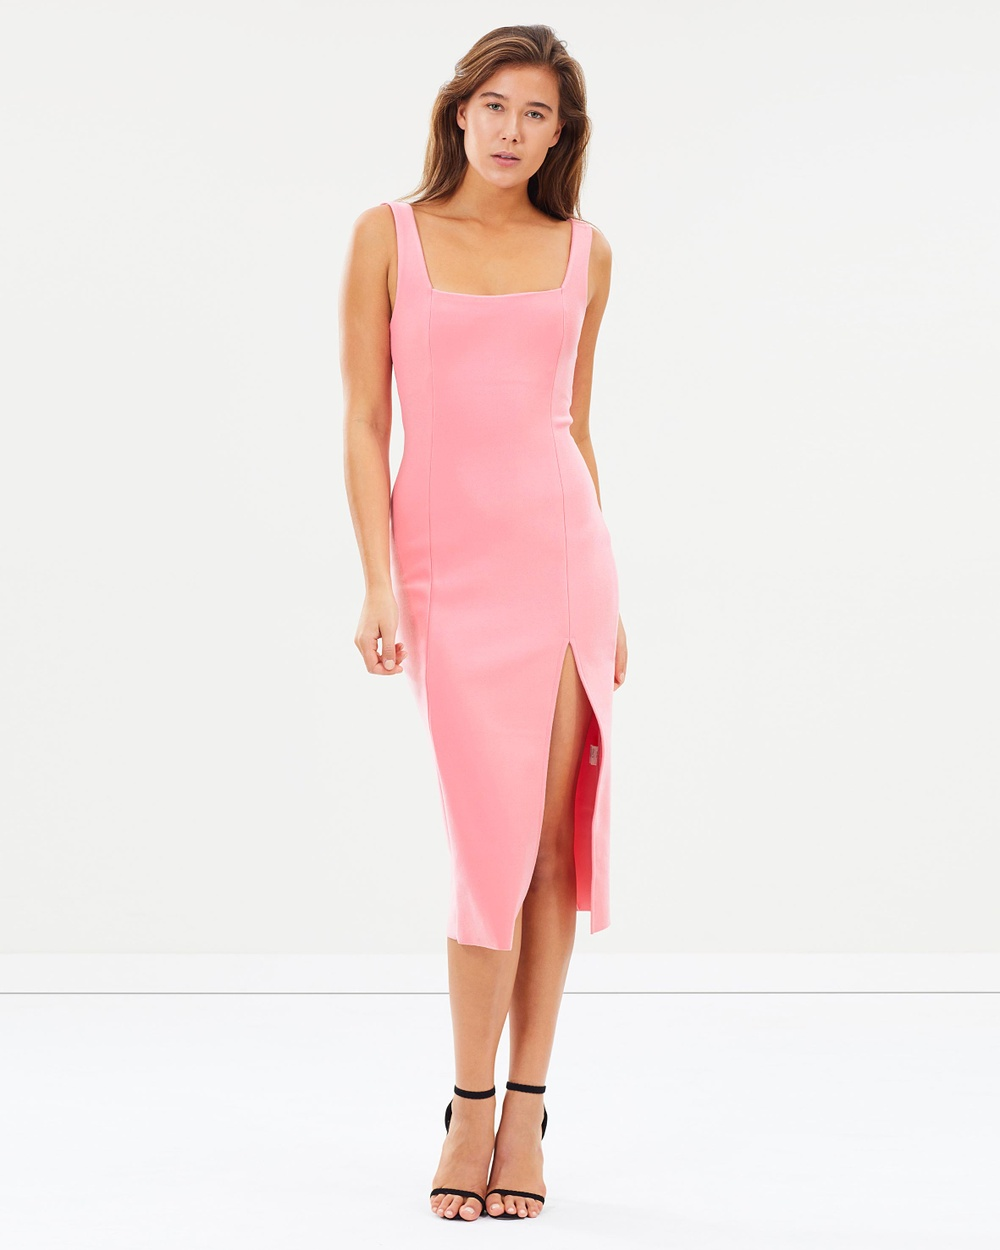 Bec & Bridge Hibiscus Islands Midi Dress Bodycon Dresses Flamingo Pink Hibiscus Islands Midi Dress